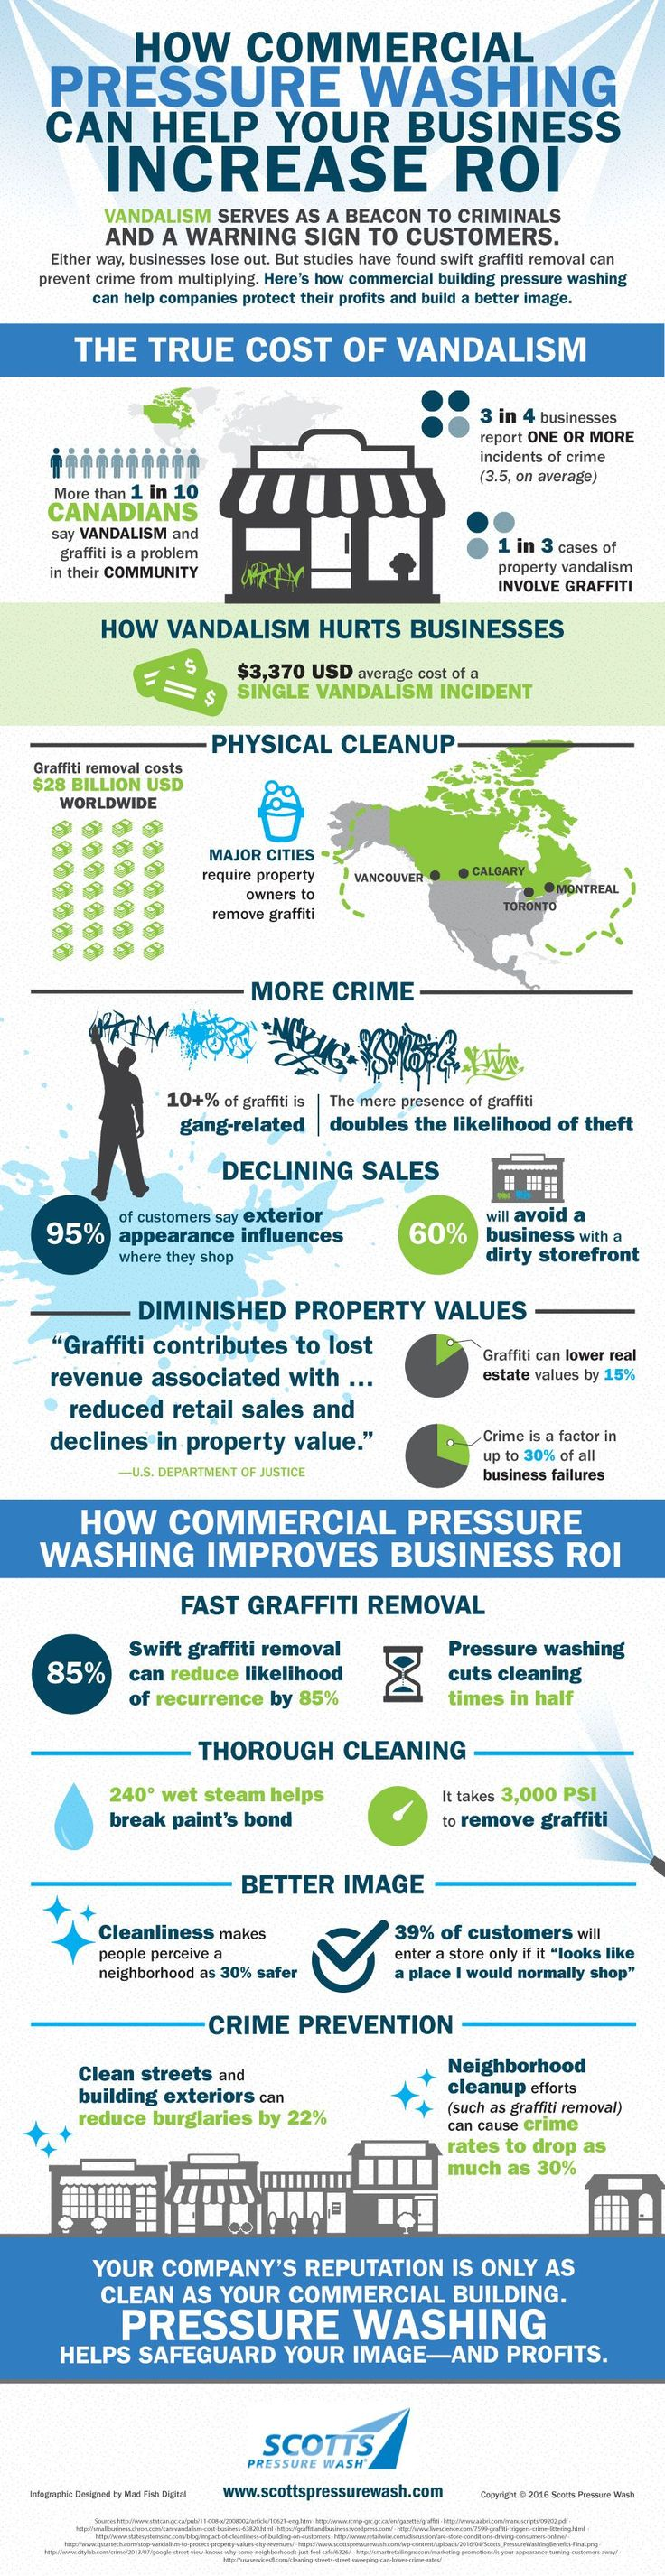 How Commercial Power Washing Can Help Your Business Increase ROI Learn More at: http://pressurewashersconnect.com/